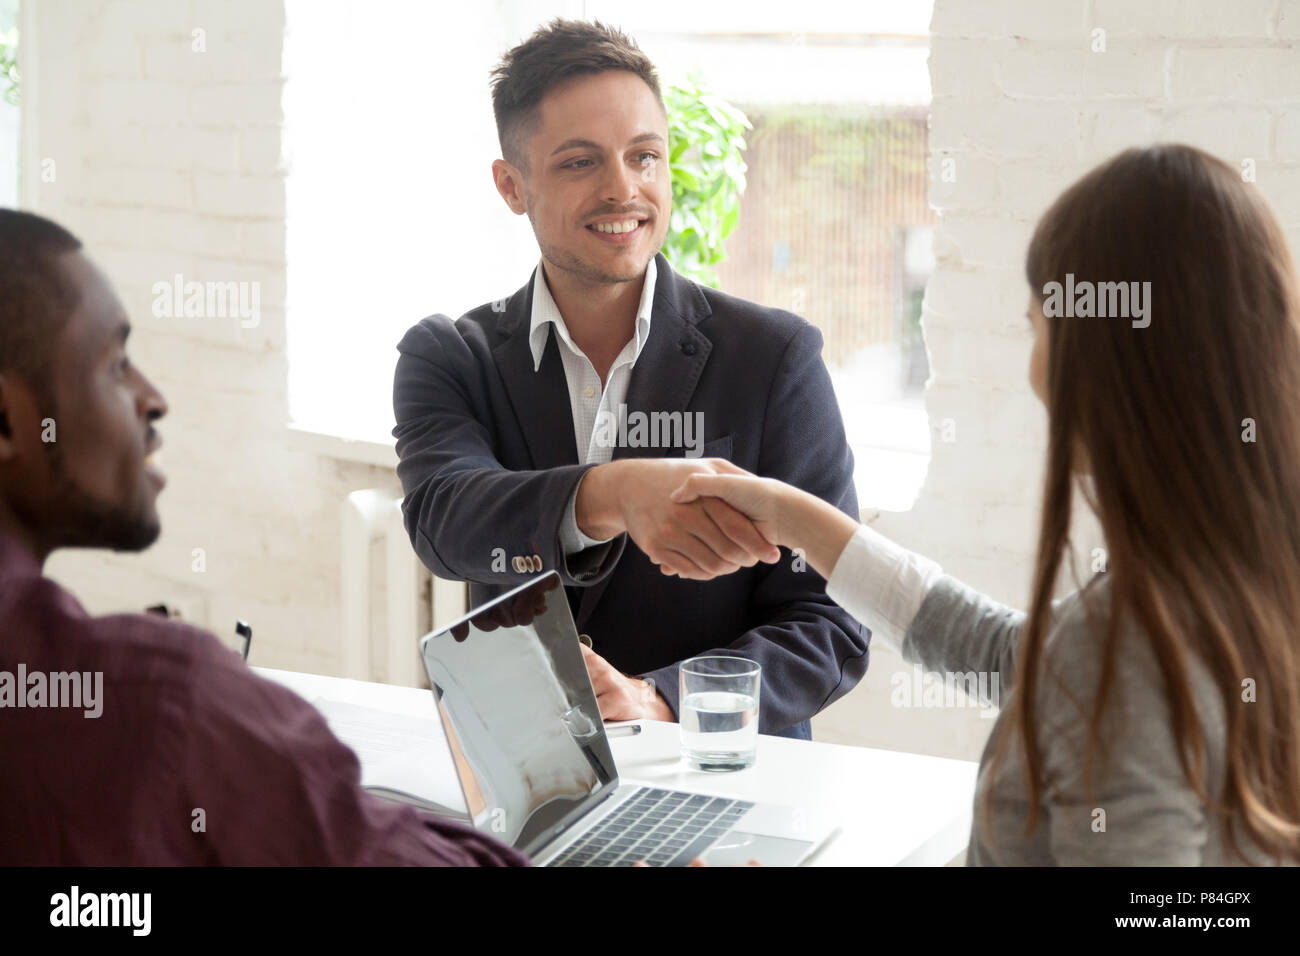 Smiling male worker shaking hand of young female colleague at business meeting, multiracial coworkers cooperating, partners handshaking greeting or ma - Stock Image